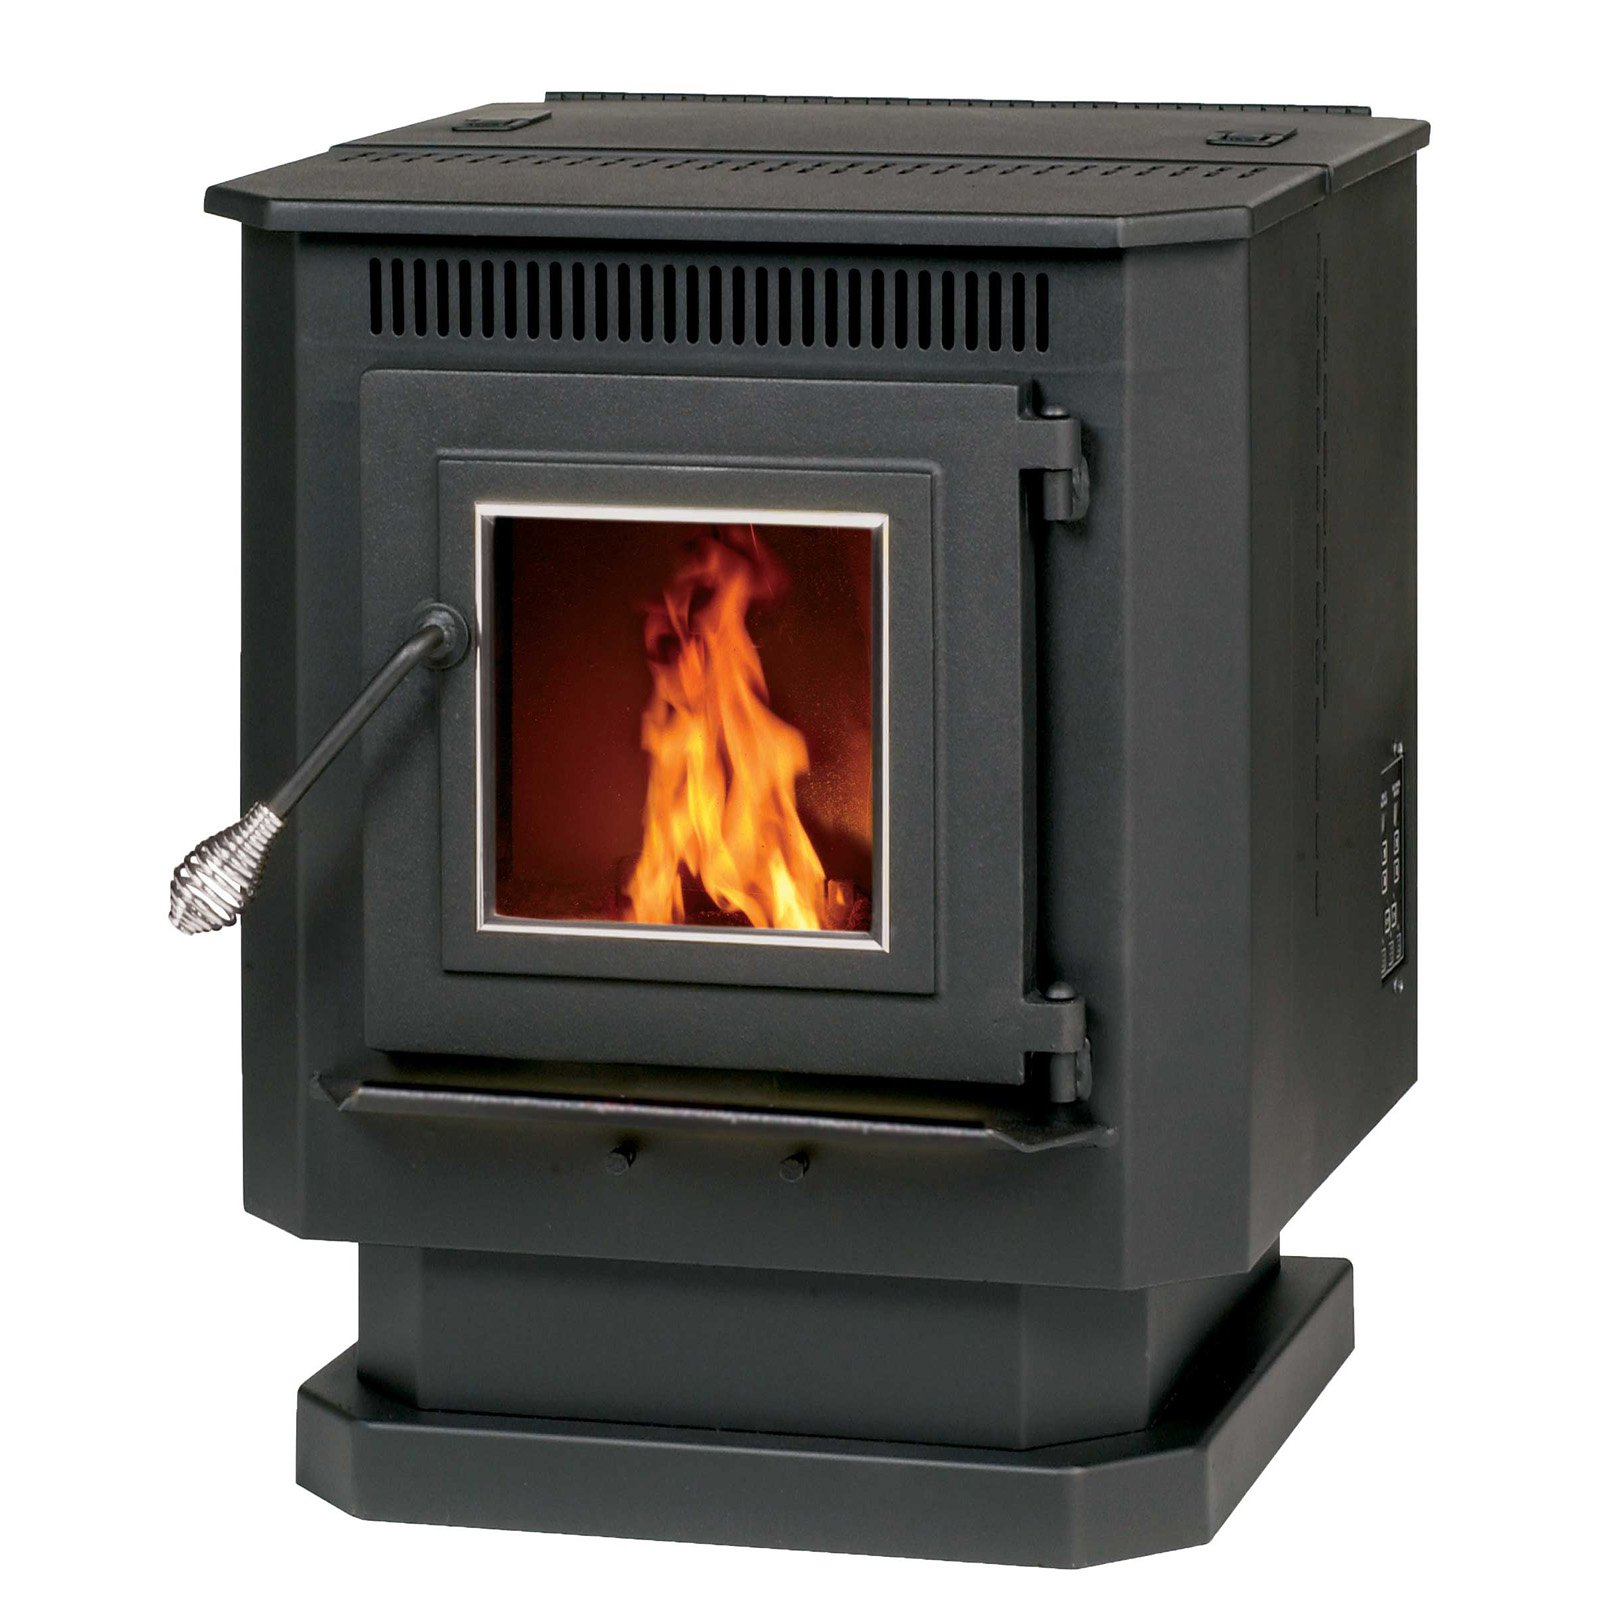 Summers Heat SHP10 Pellet Stove by ENGLAND'S STOVE WORKS